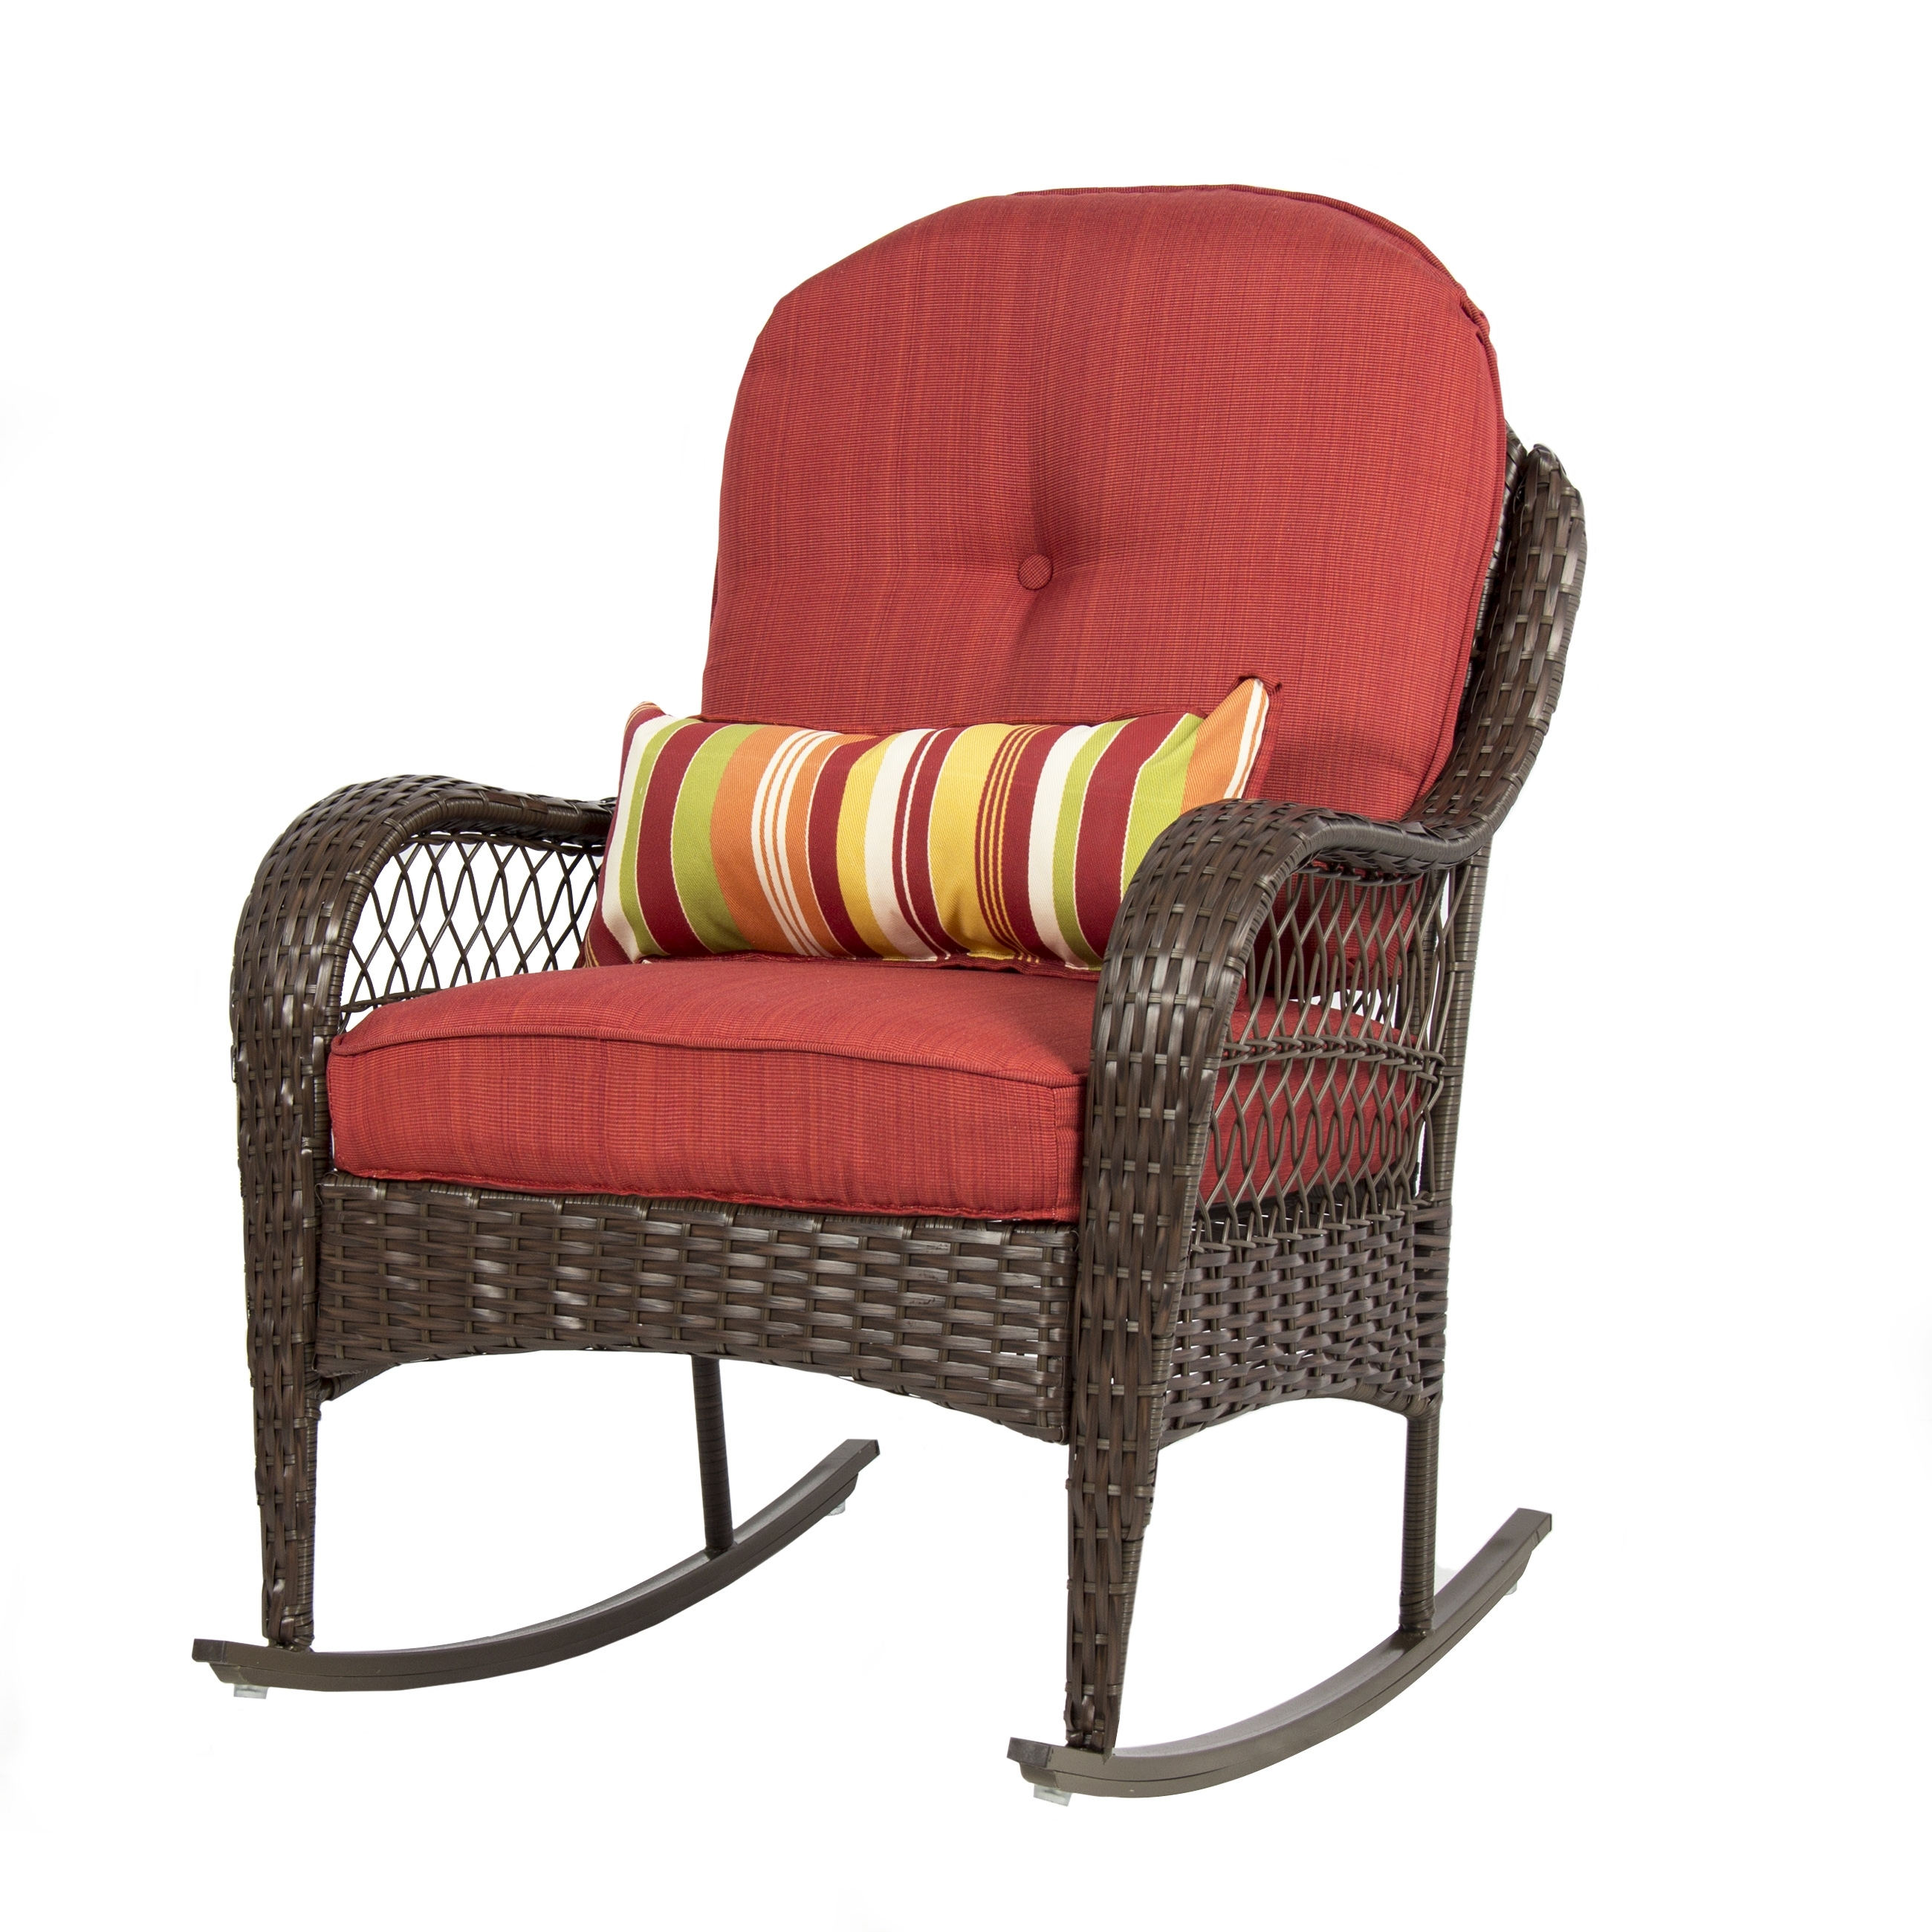 Best Choice Products Wicker Rocking Chair Patio Porch Deck Furniture Throughout Well Known Rocking Chairs At Walmart (View 3 of 15)